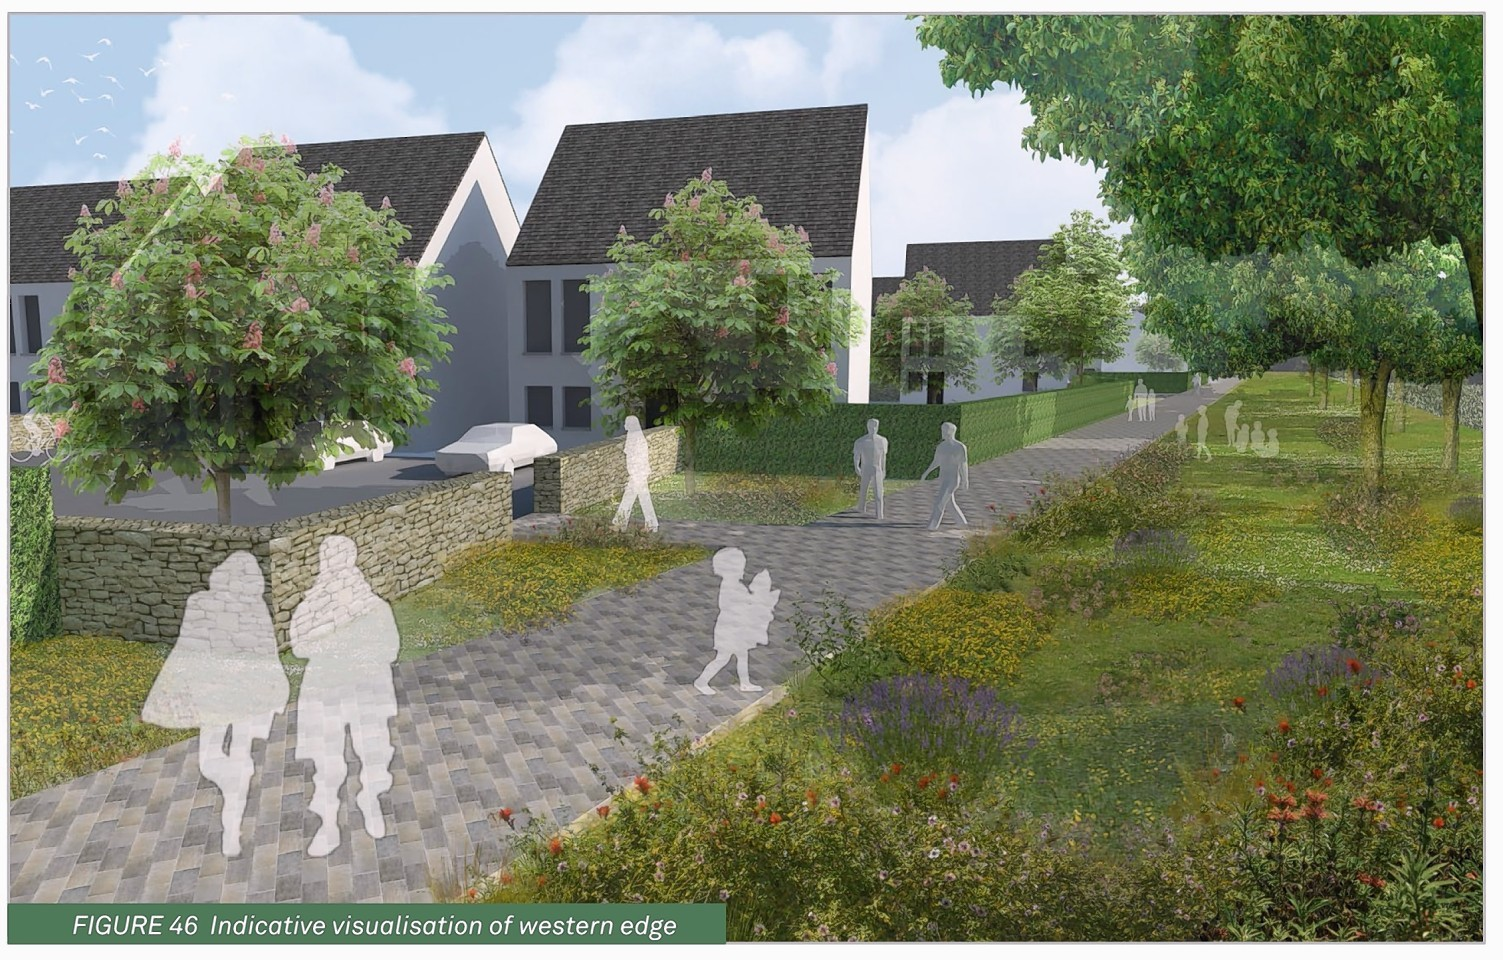 Plans show how the new town could look